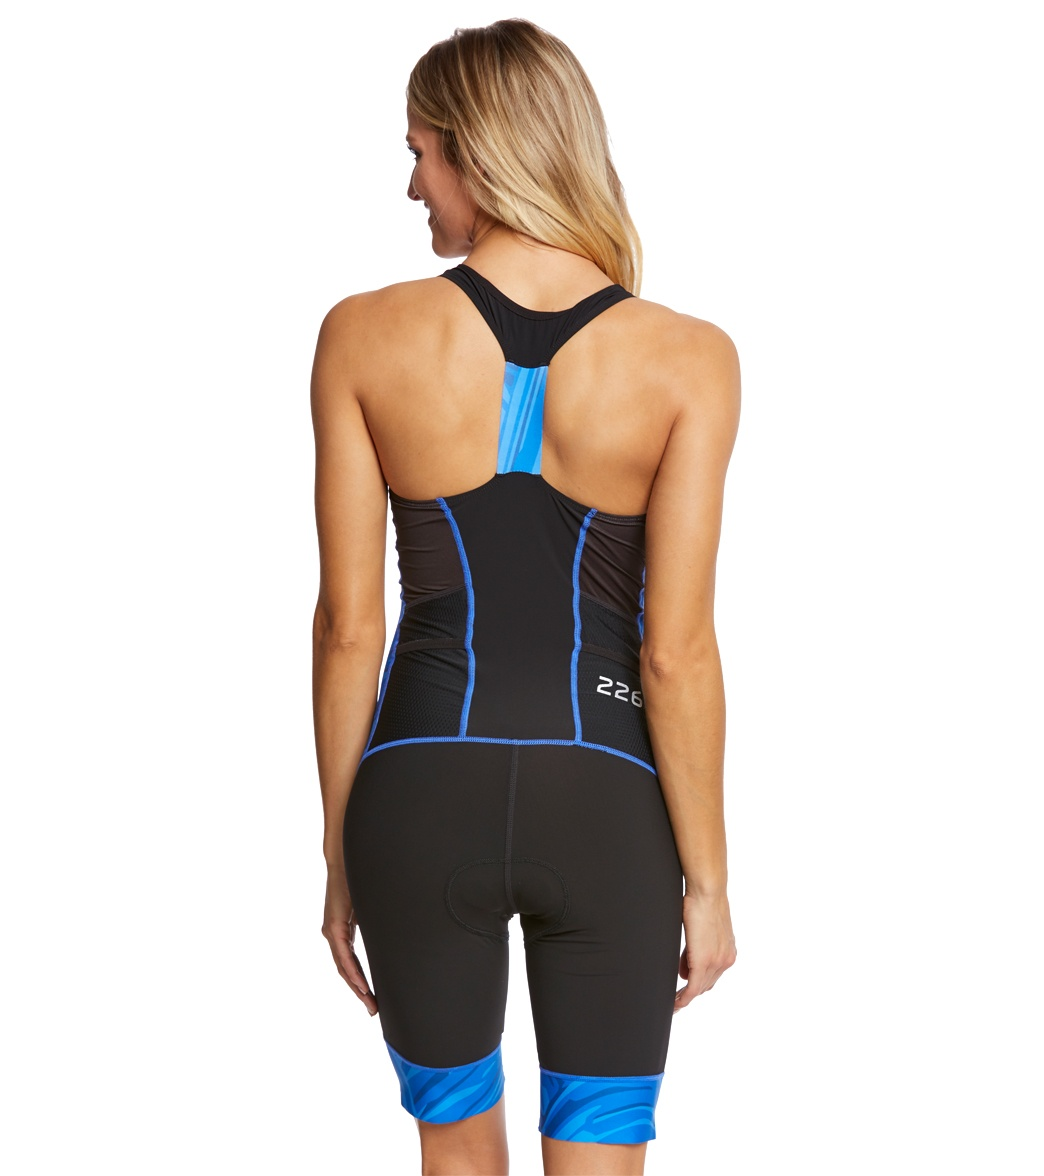 Orca Women s 226 Race Tri Suit at SwimOutlet.com - Free Shipping be9872efa